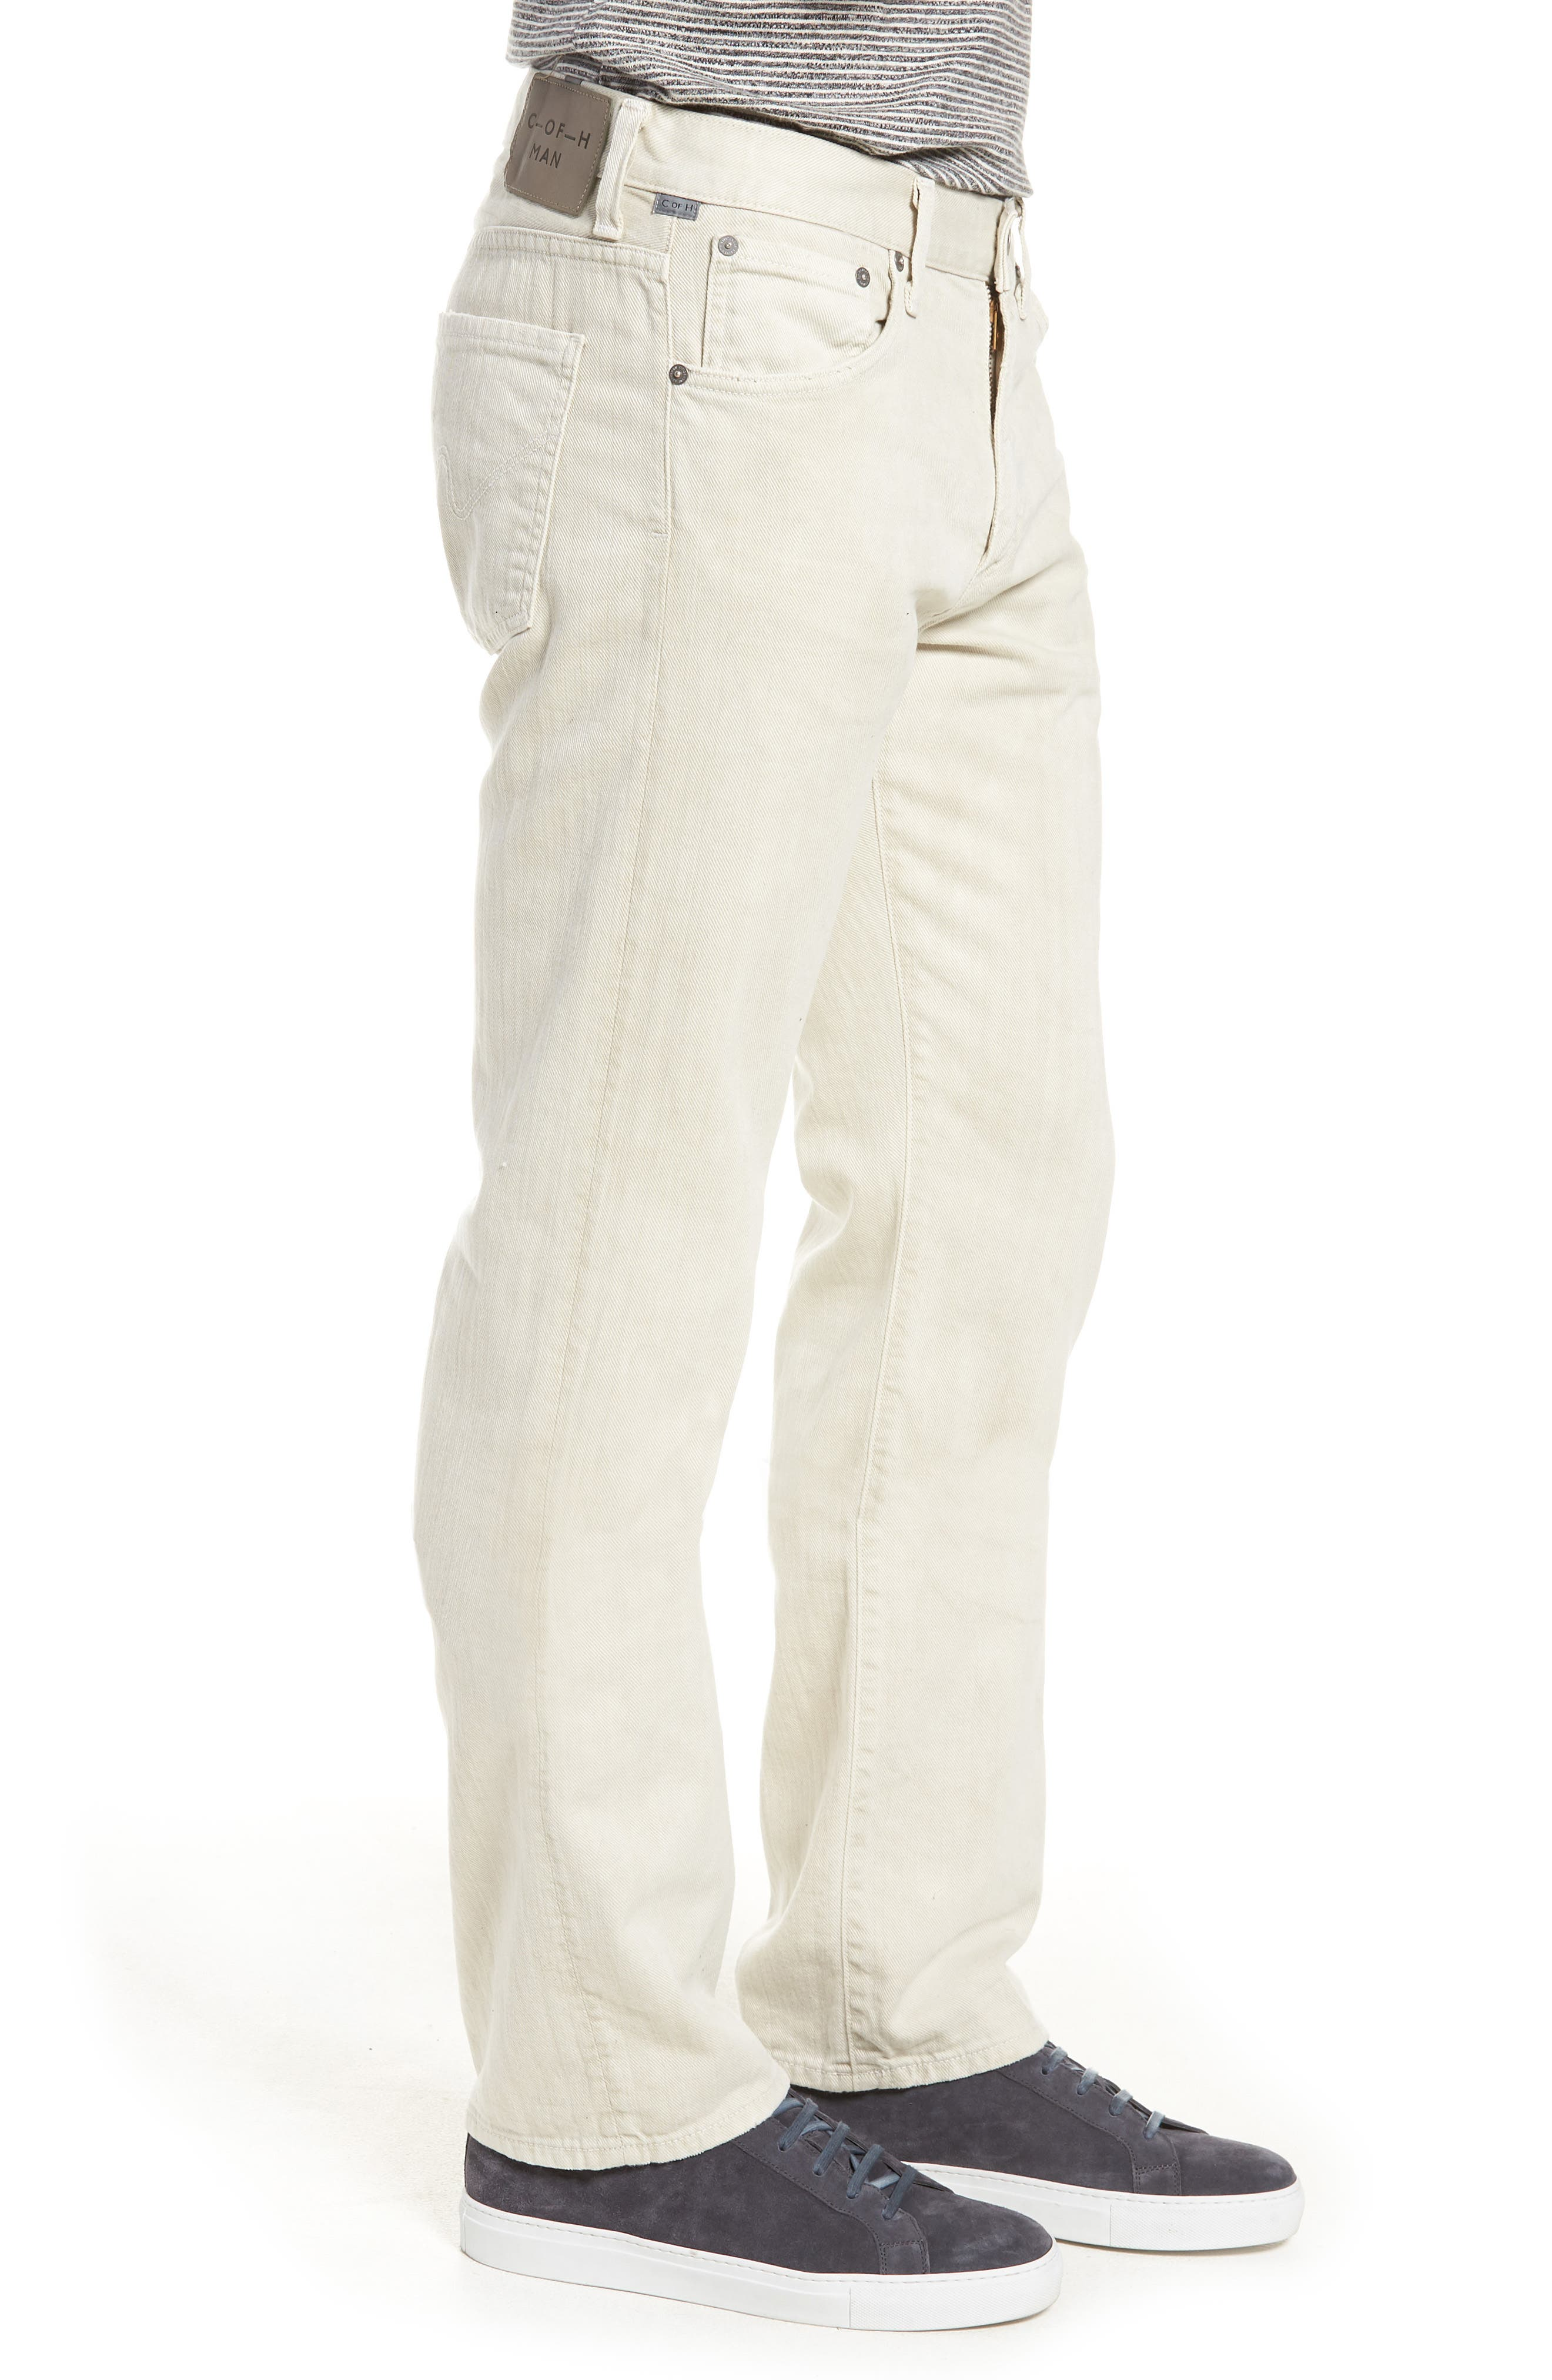 CITIZENS OF HUMANITY,                             Sid Straight Leg Jeans,                             Alternate thumbnail 3, color,                             MODA